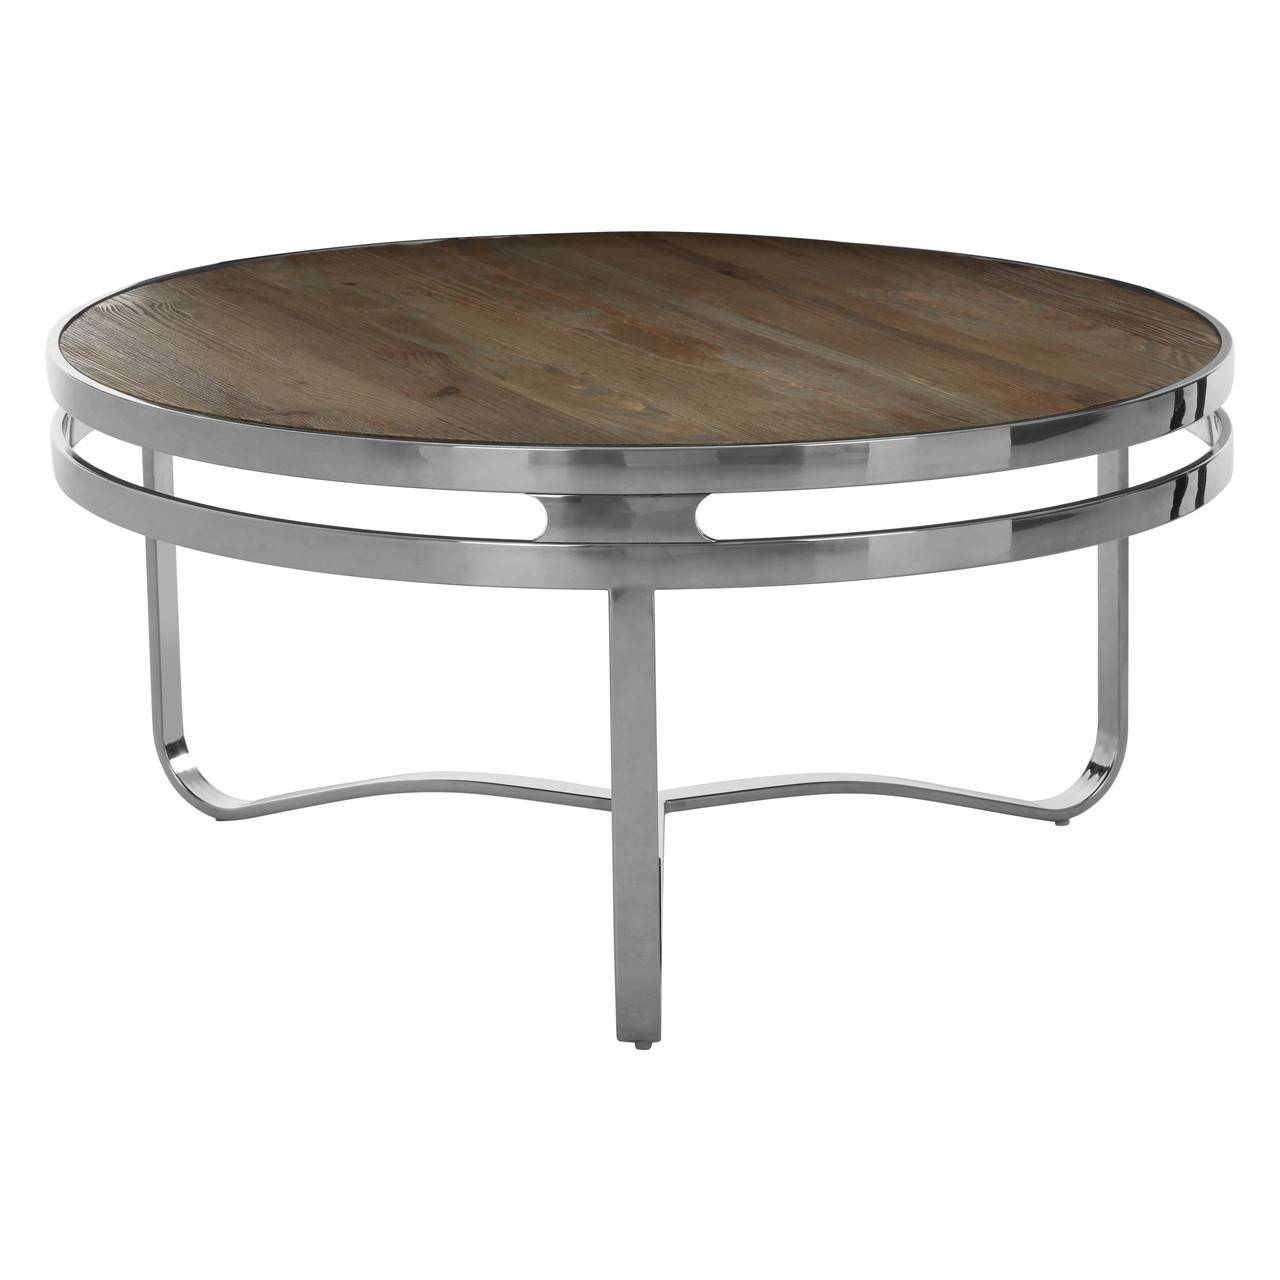 Plymouth Coffee Table   Natural Pine Wood